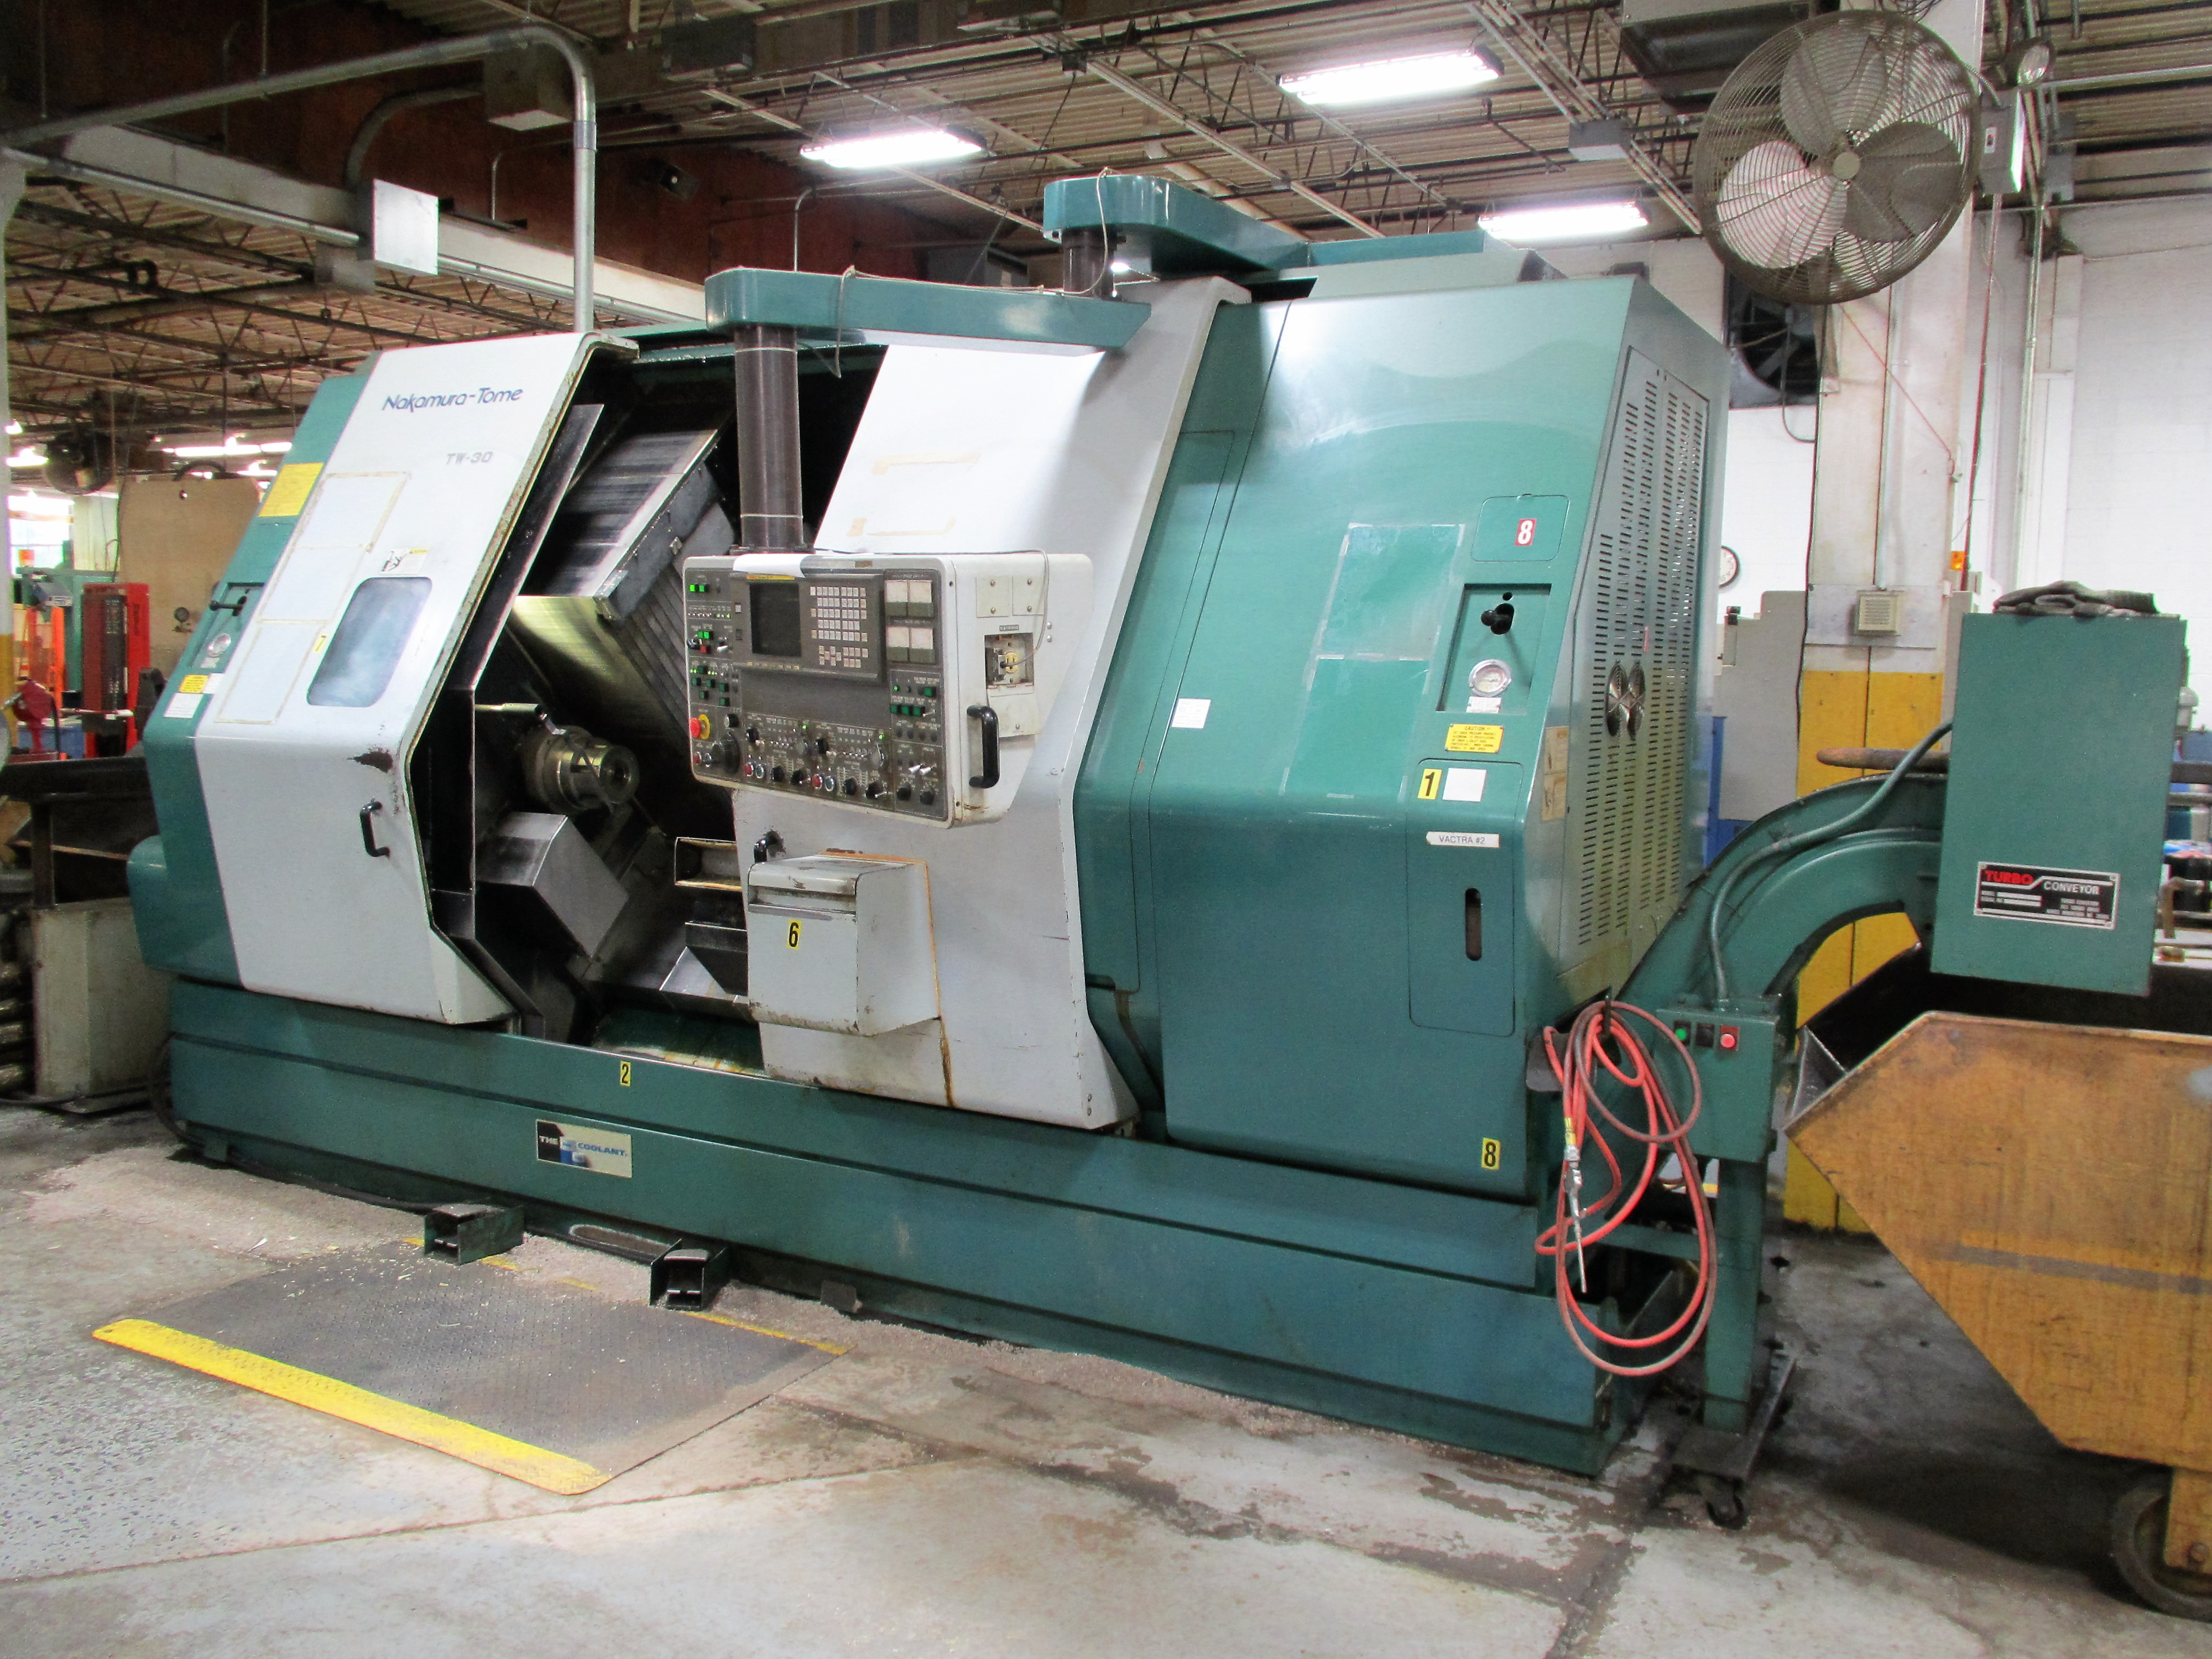 NAKAMURA TOME TW-30MM 7-AXIS CNC TWIN SPINDLE TURNING CENTER - Image 2 of 21